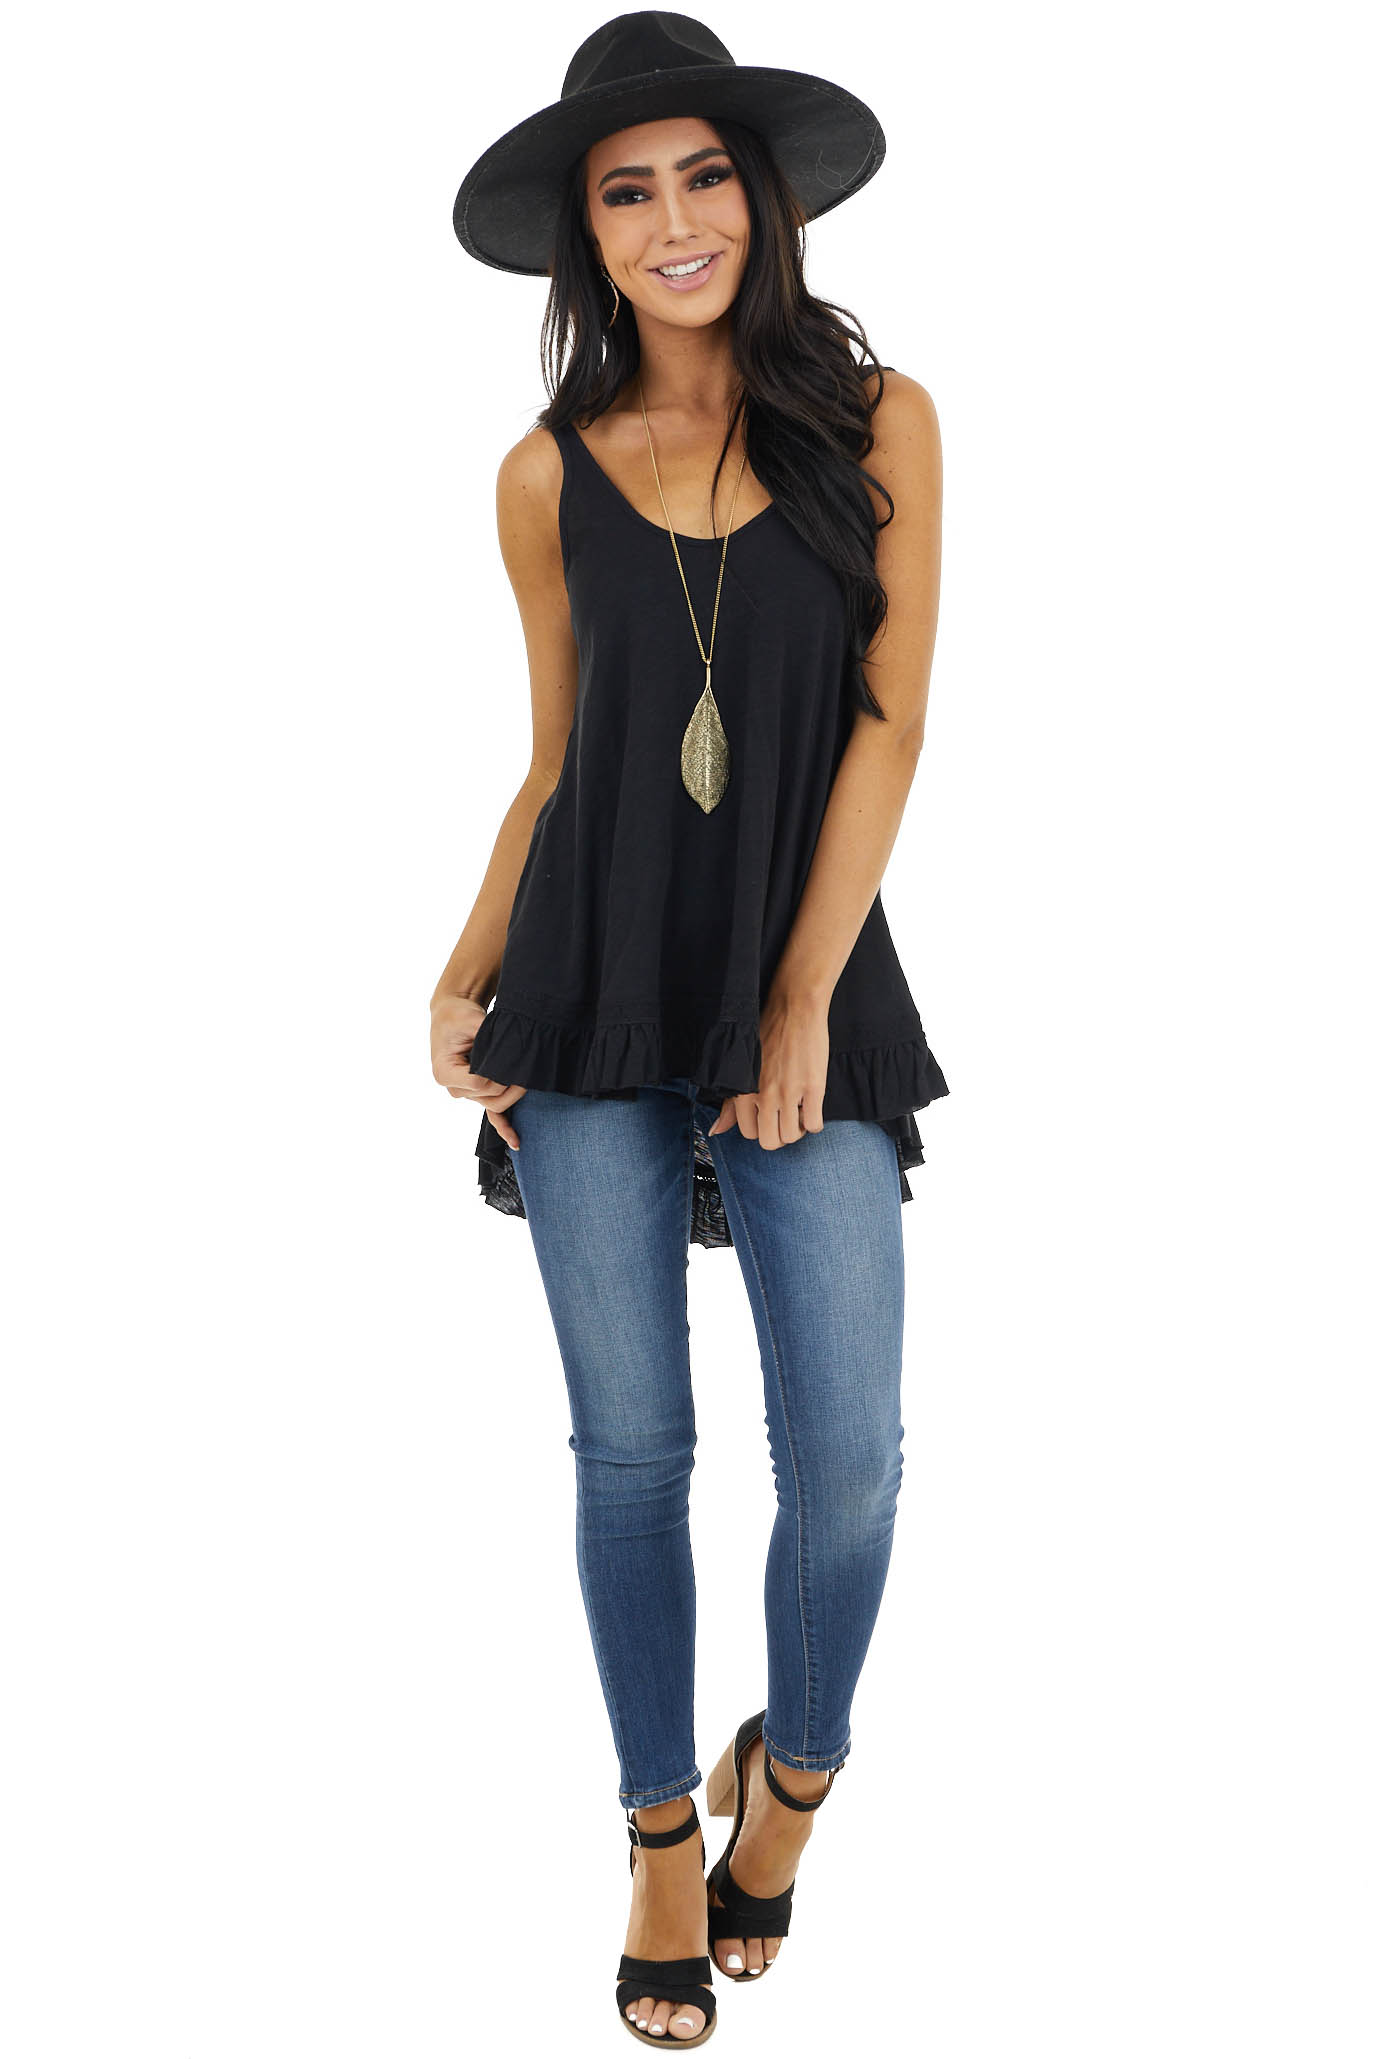 Heathered Black Knit Tank Top with Ruffle and Lace Details